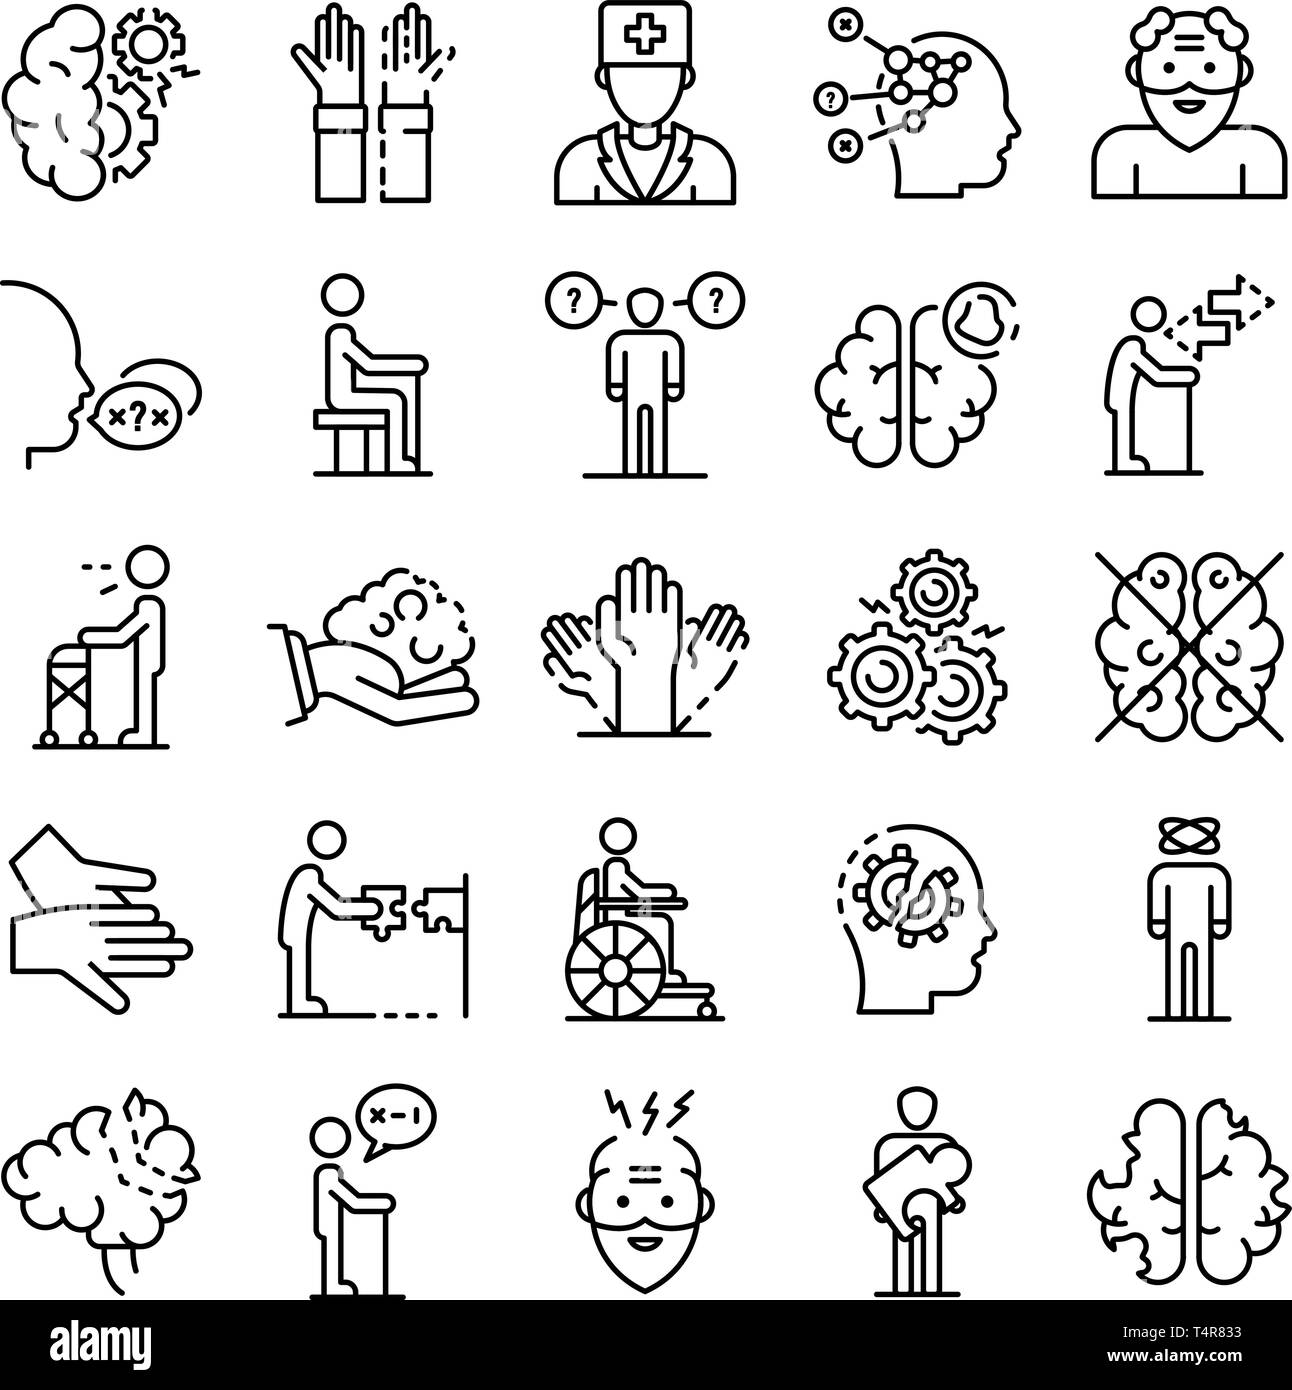 Alzheimers disease icons set, outline style - Stock Image